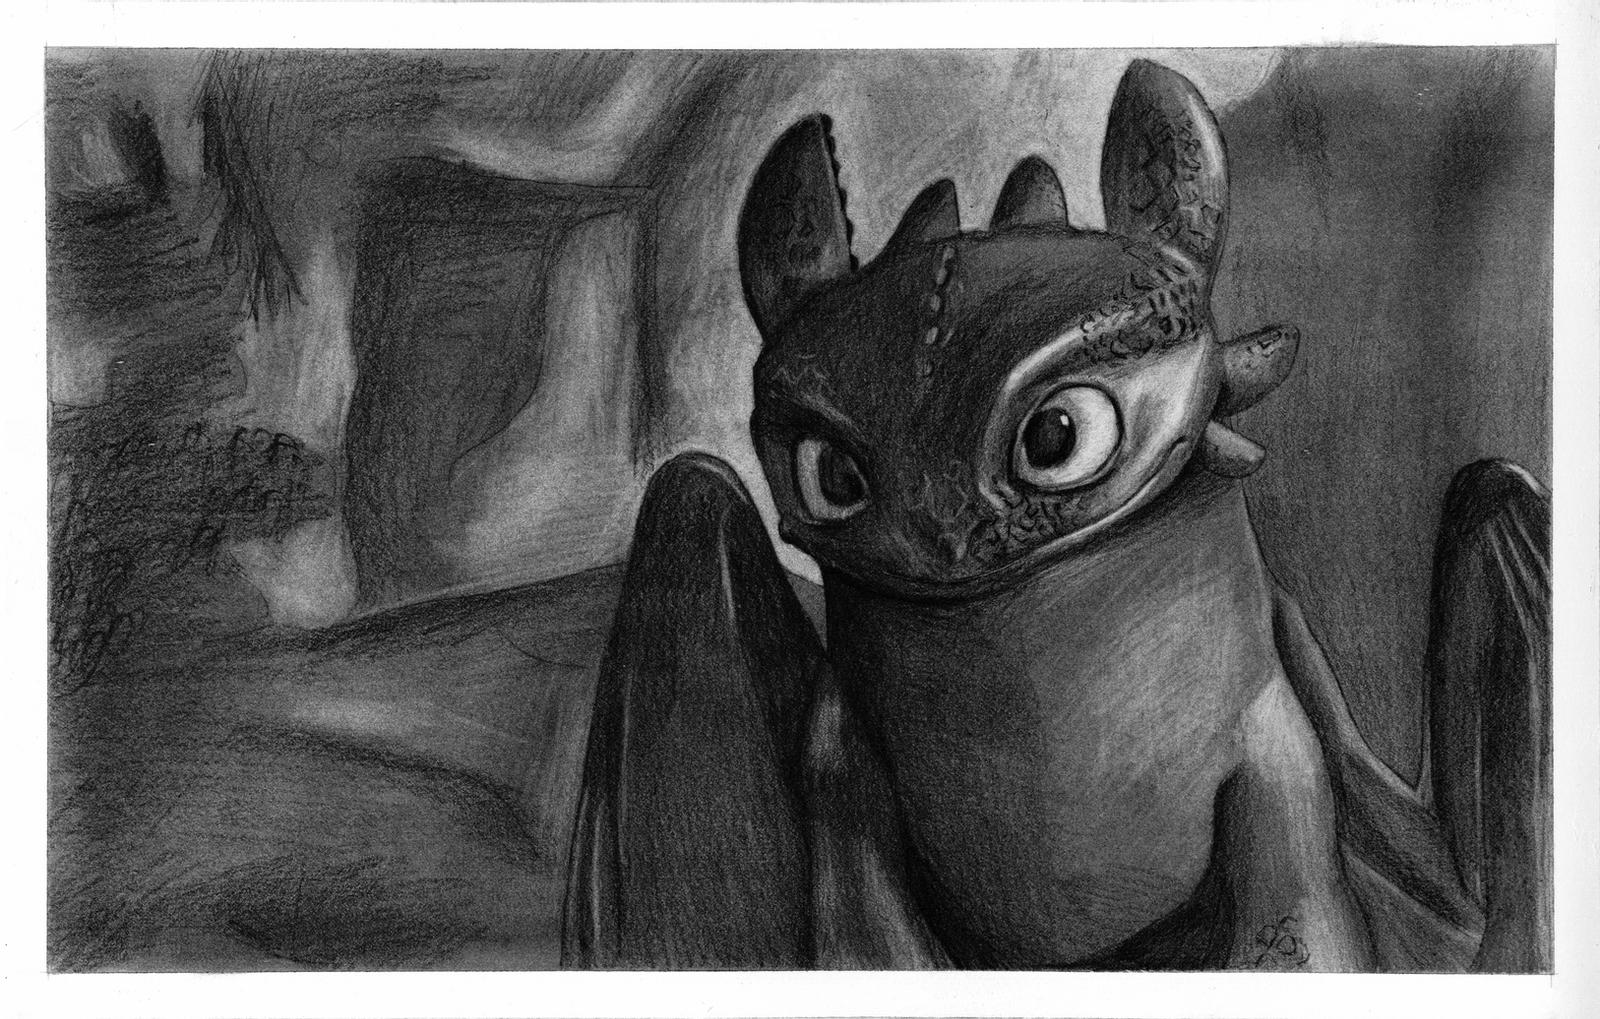 toothless dragon drawing how to draw toothless drawingforallnet drawing toothless dragon